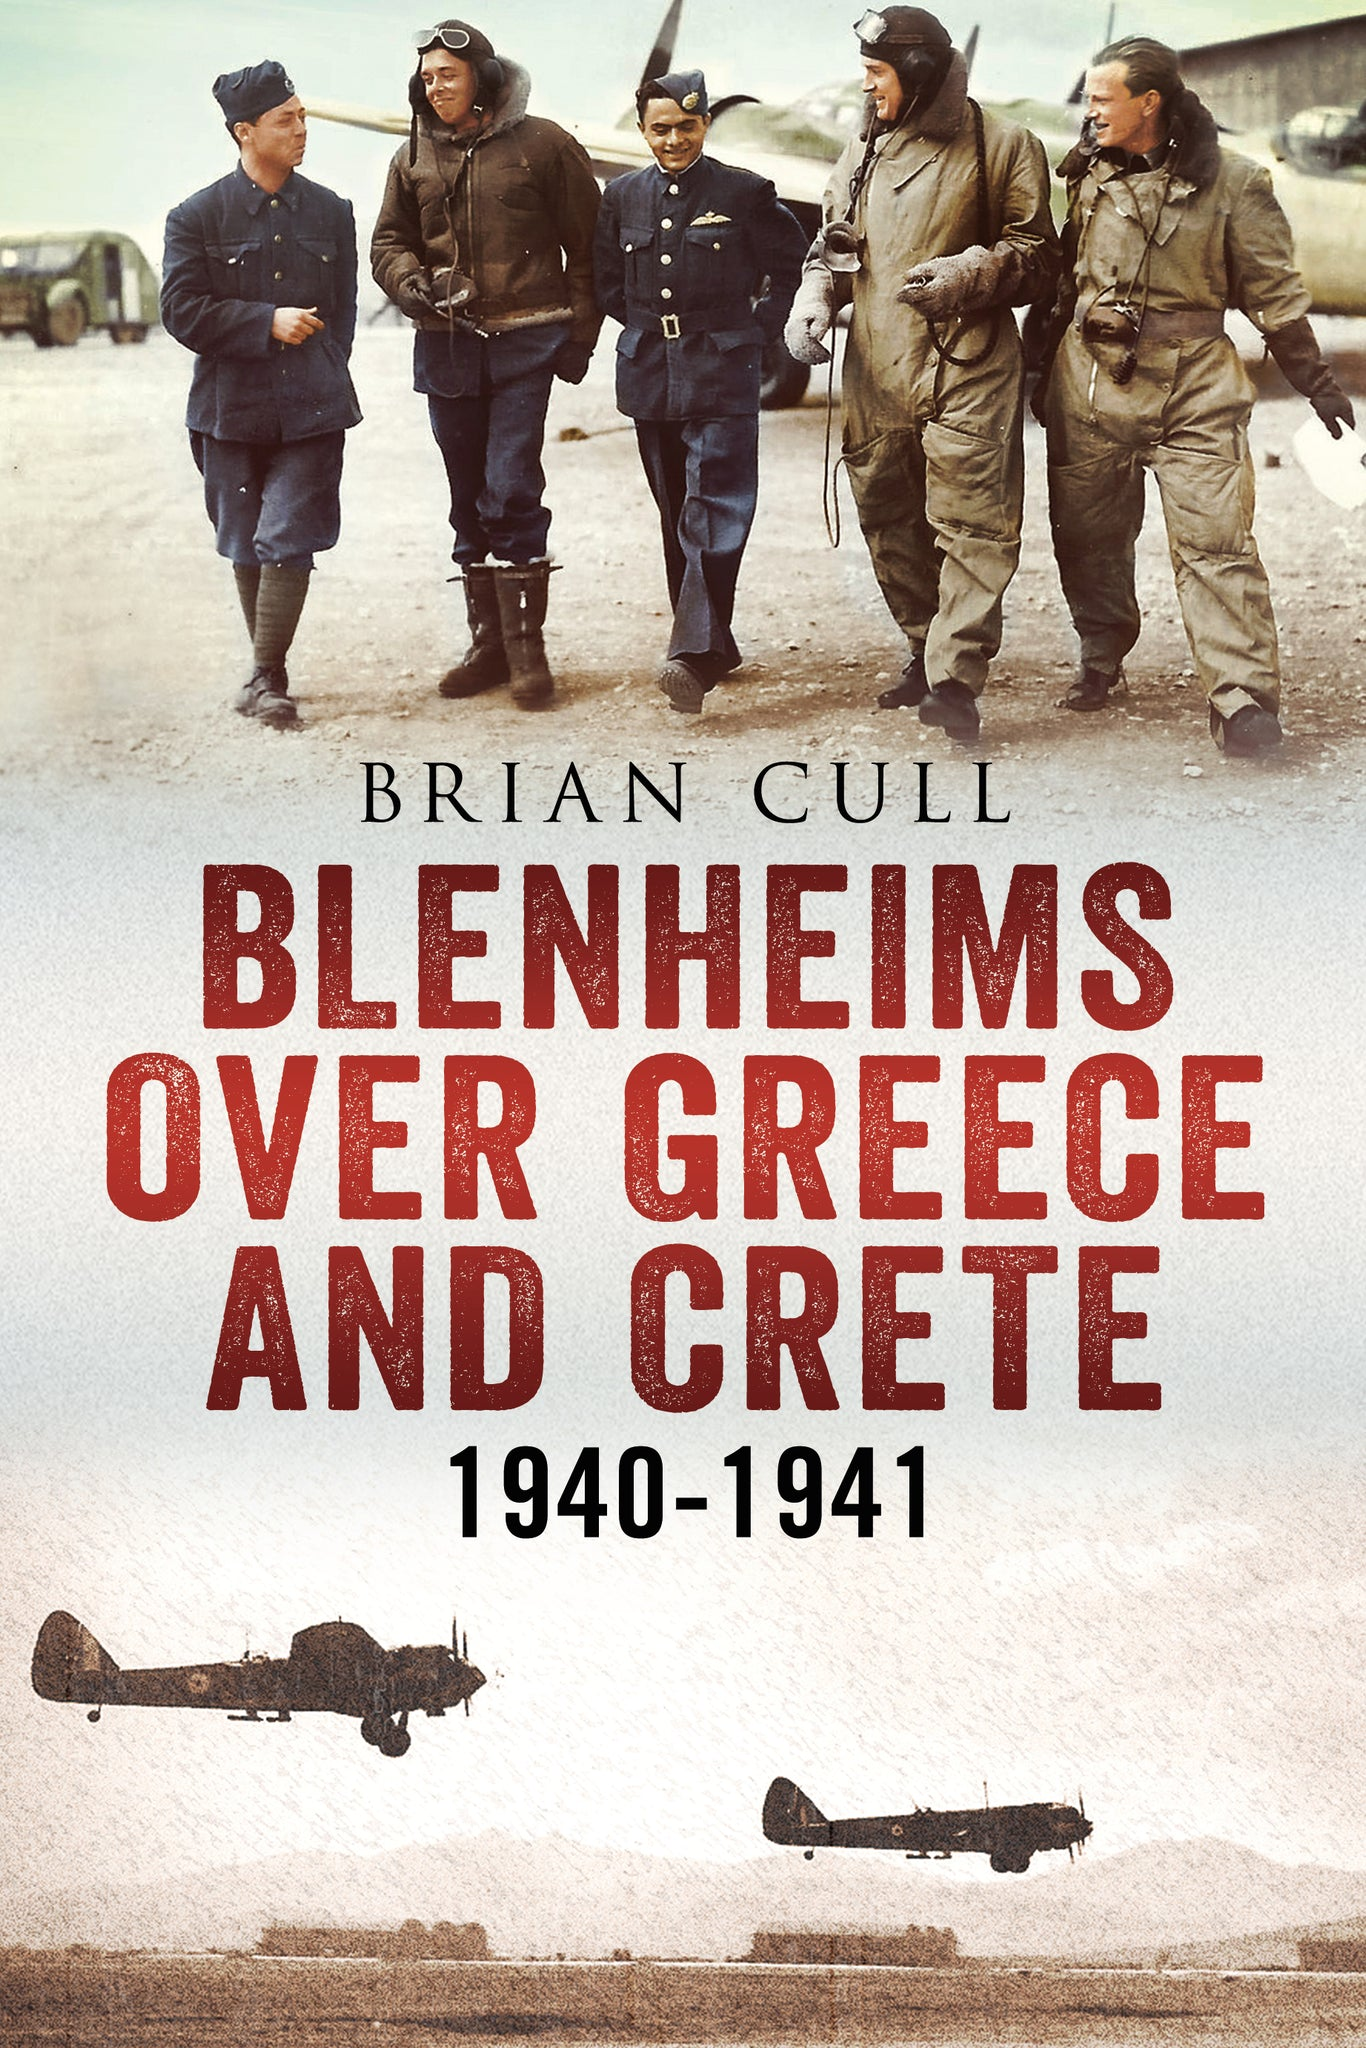 Blenheims Over Greece and Crete 1940-1941 - available from Fonthill Media